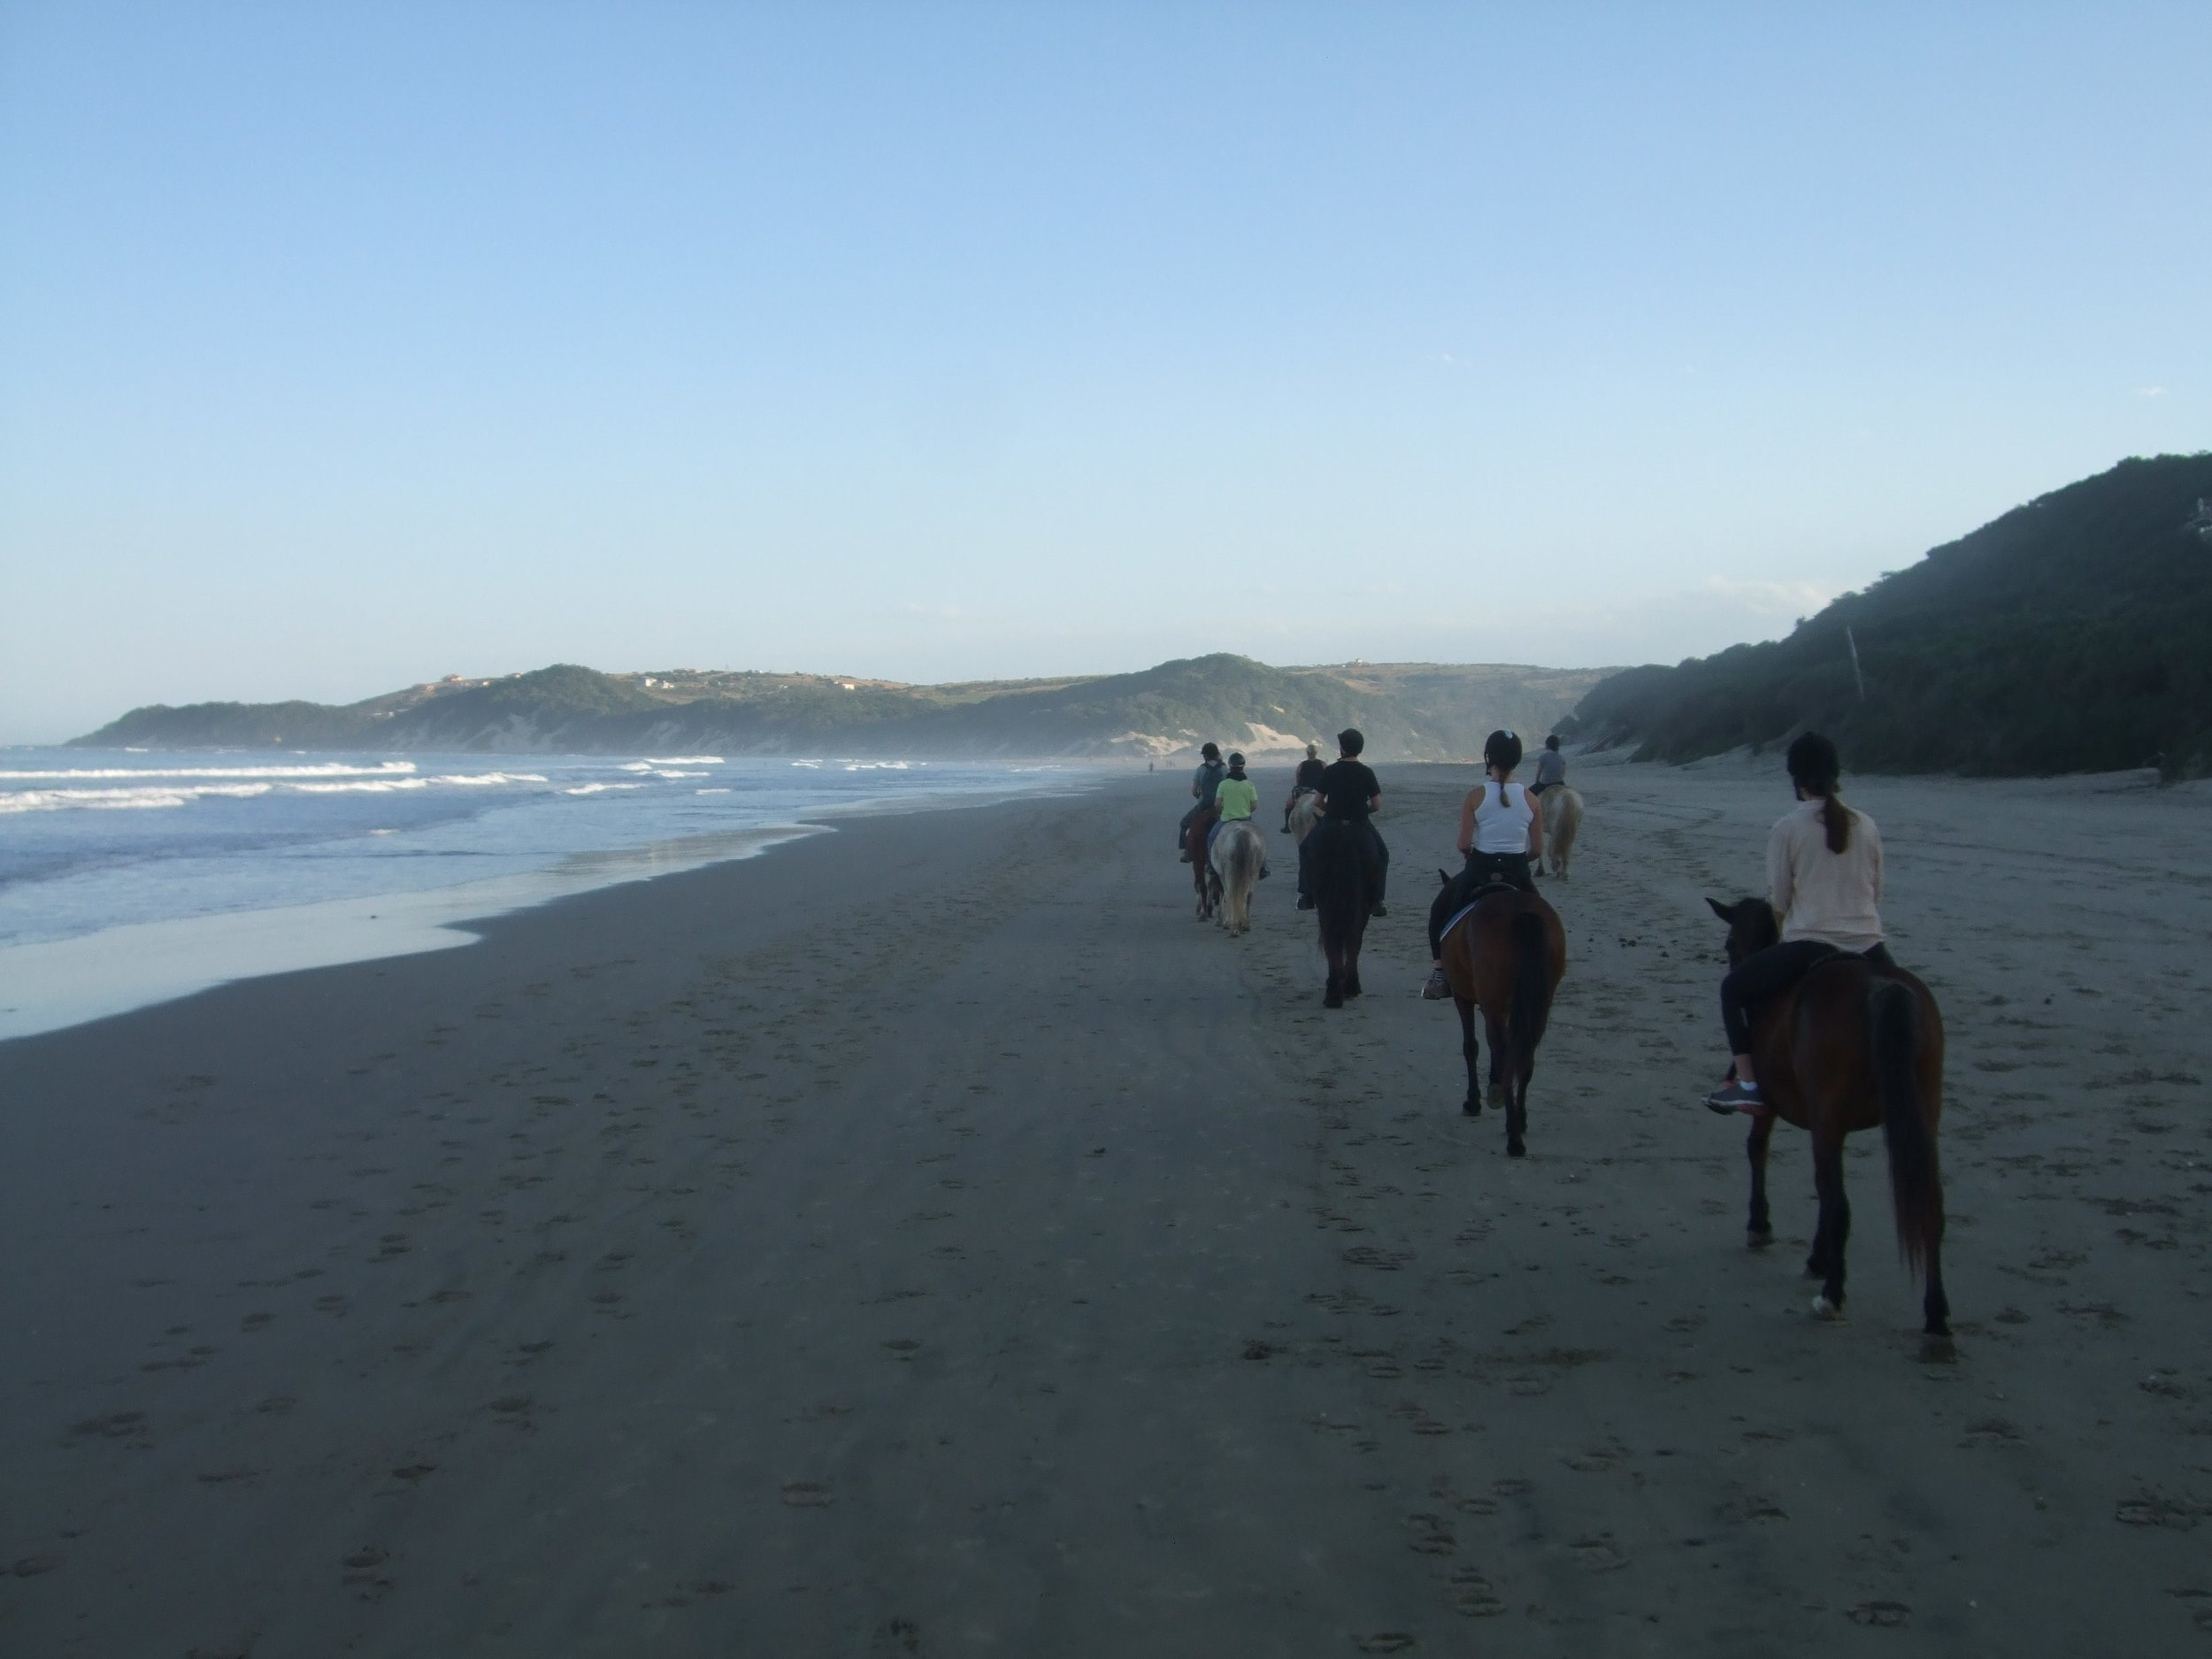 LAL-CPT-Travelling-Classroom-TC-Group-beach-horseriding-2012-min.JPG